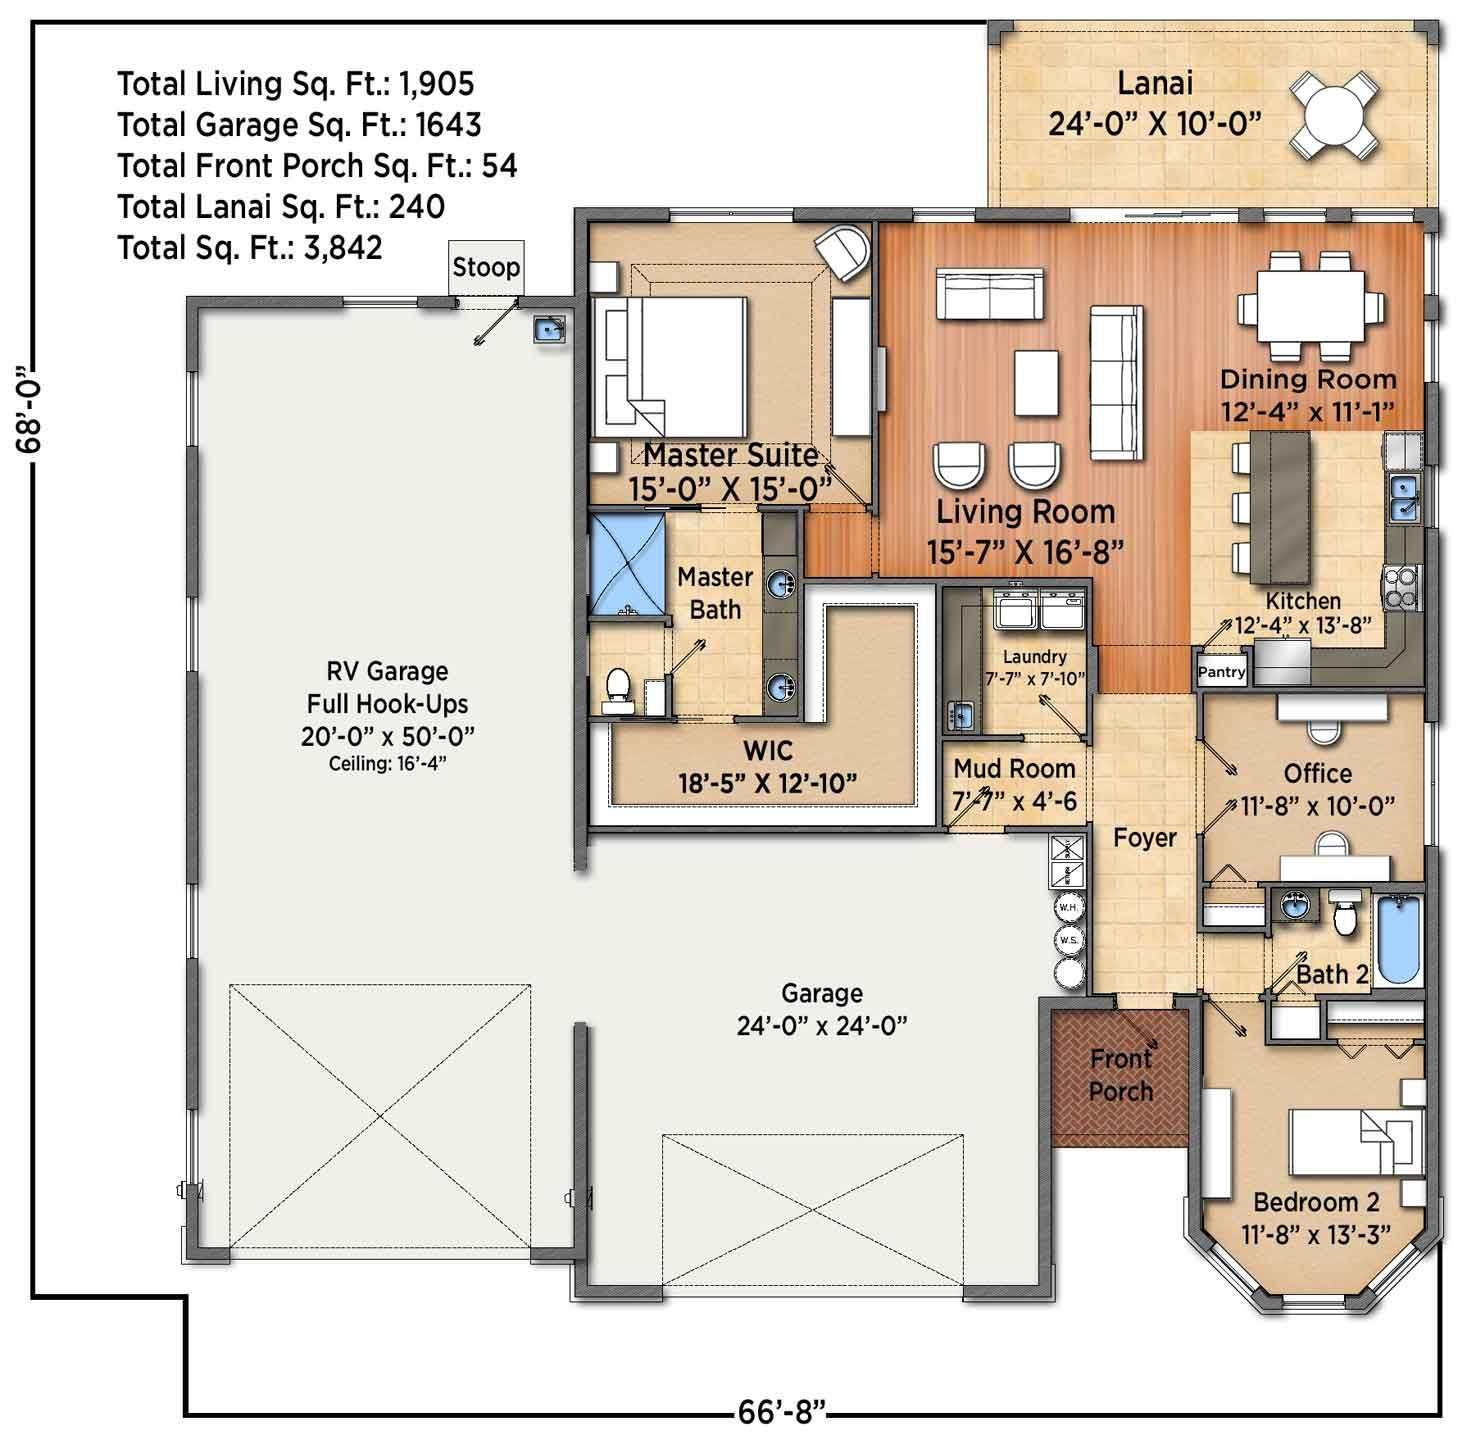 Rv Garage With Living Quarters: House Plans With RV Garage In 2019